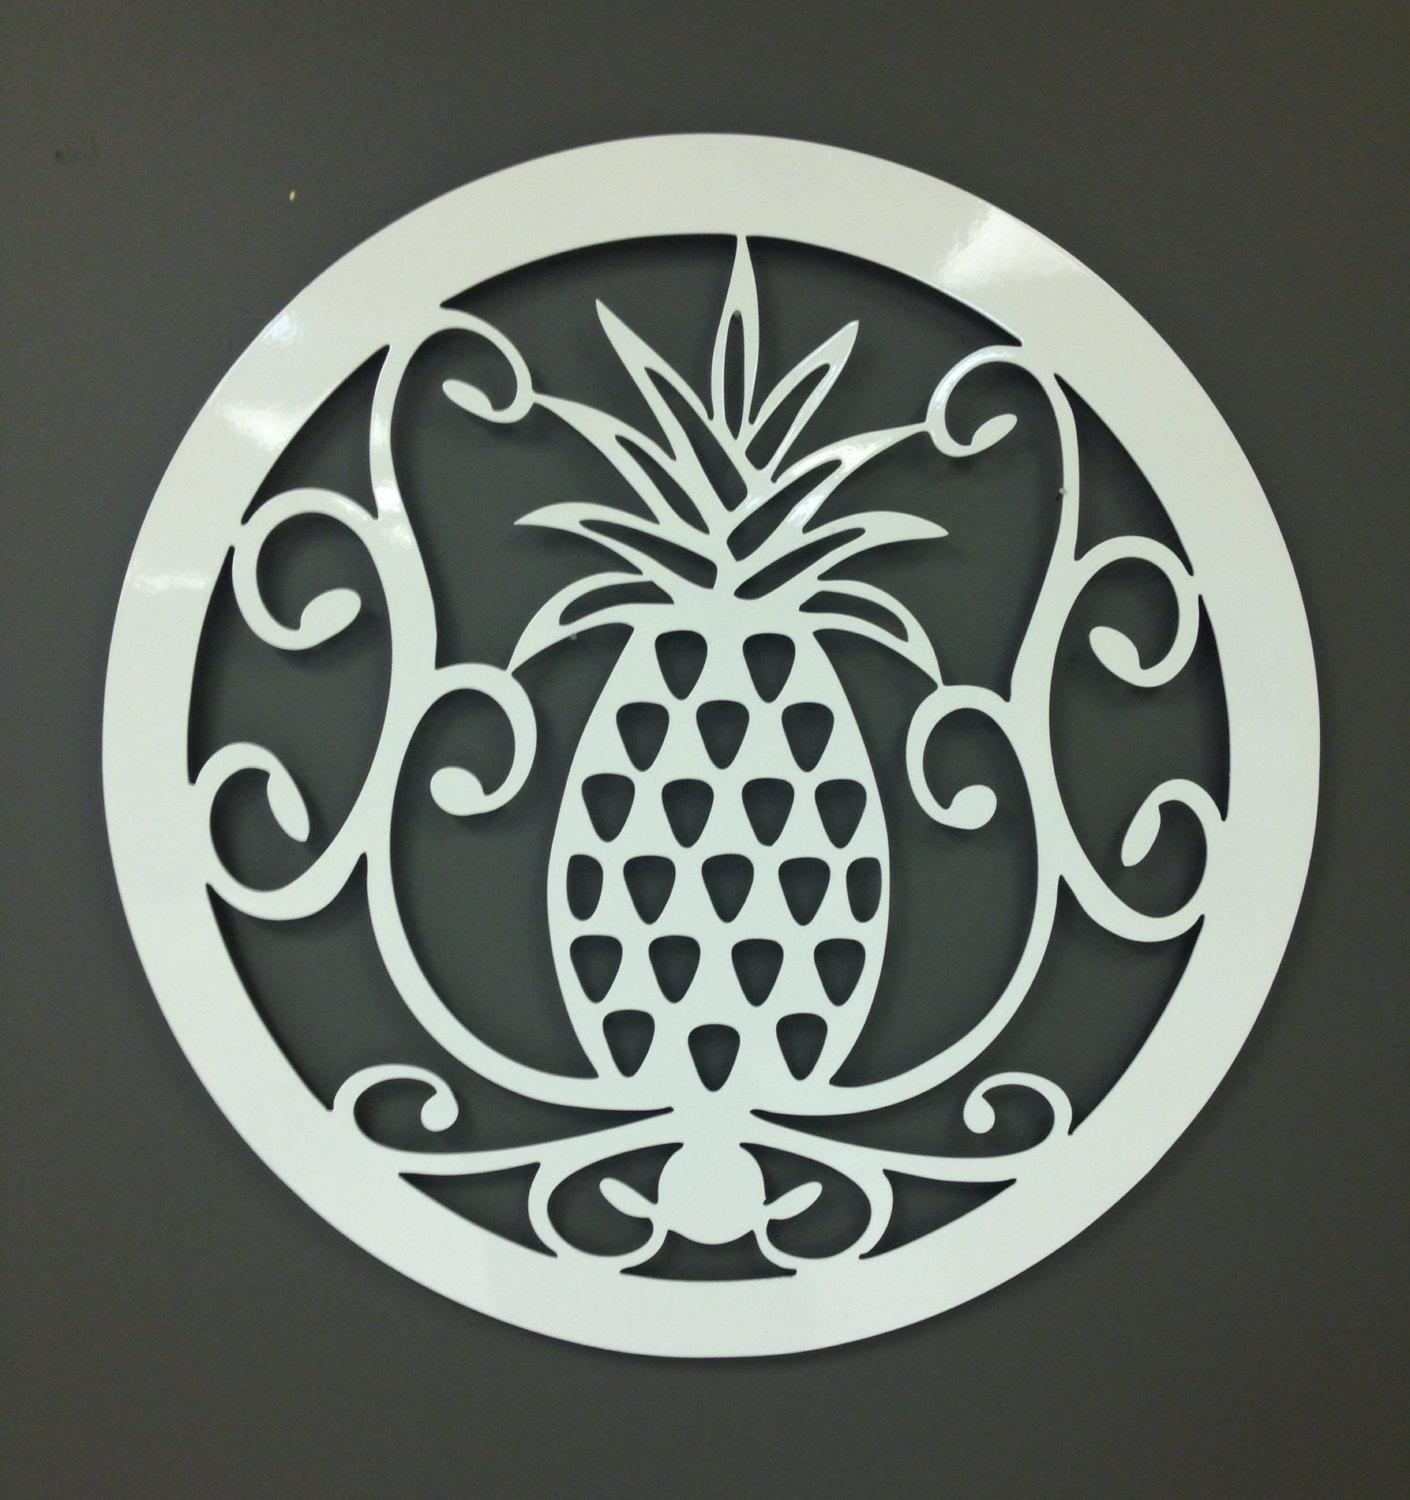 Metal Wall Art Pineapple Welcome Symbol 24 Regarding Pineapple Metal Wall Art (View 1 of 20)